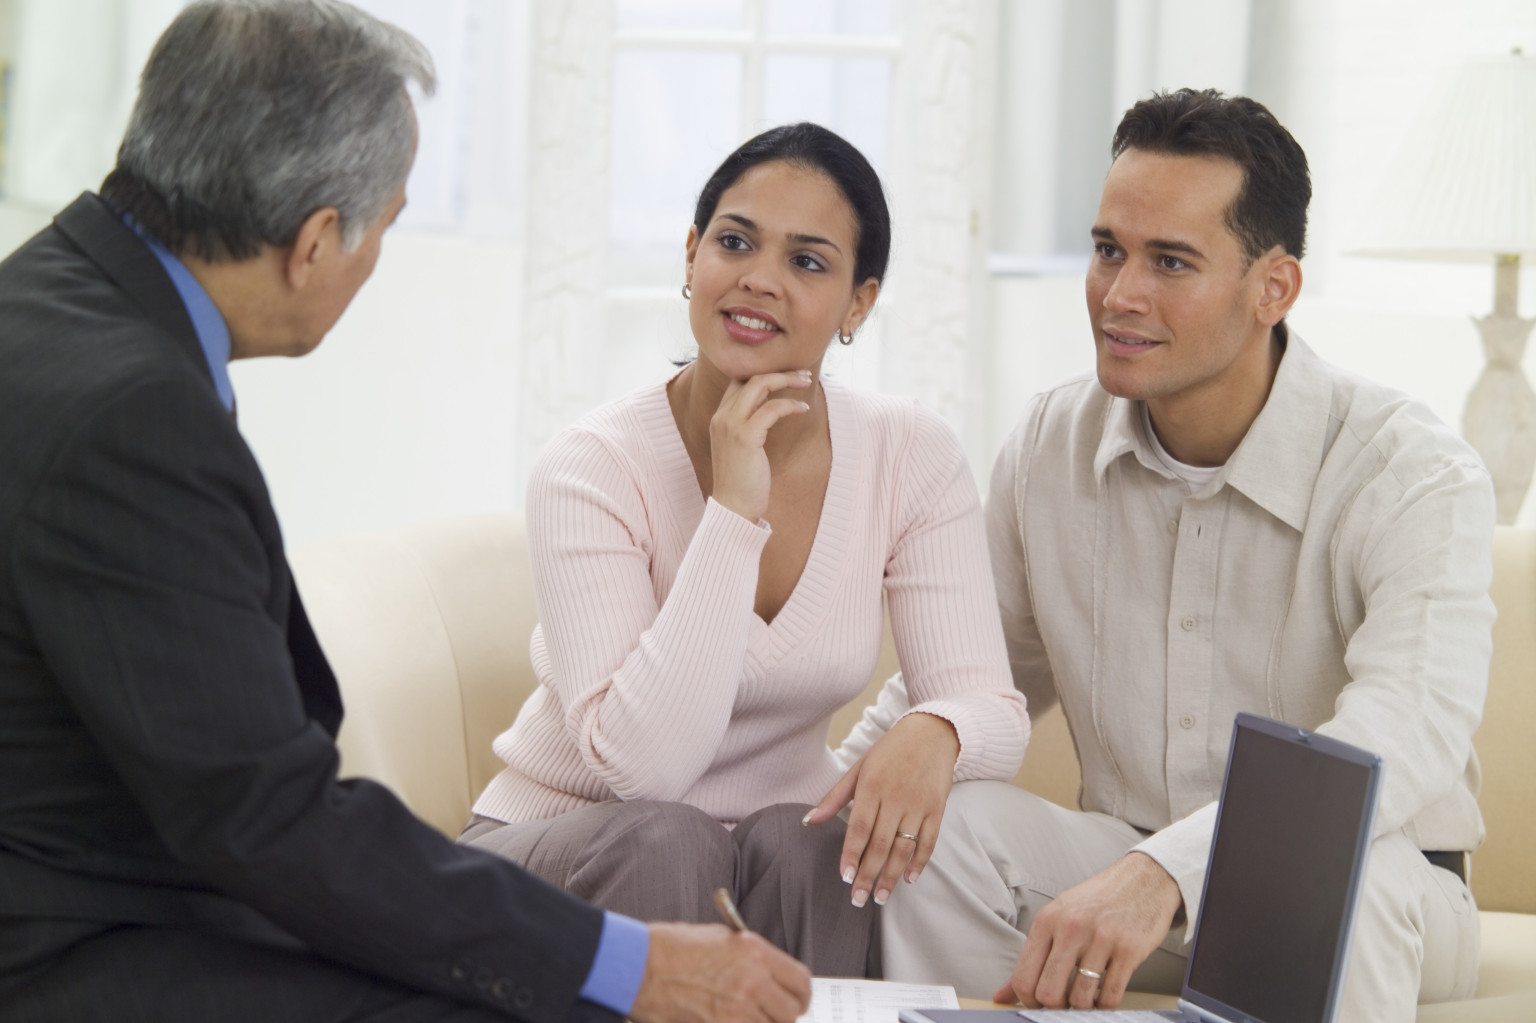 """relationship counseling online It has been called many things: online couples therapy, online marriage counseling, e-marriage counseling or online relationship counseling, but what exactly is it it's confusing, as you'll find everything from ebooks and video programs to text-type """"therapy"""" or """"coaching"""" in the search results costs range from $30 a week to $300 a."""